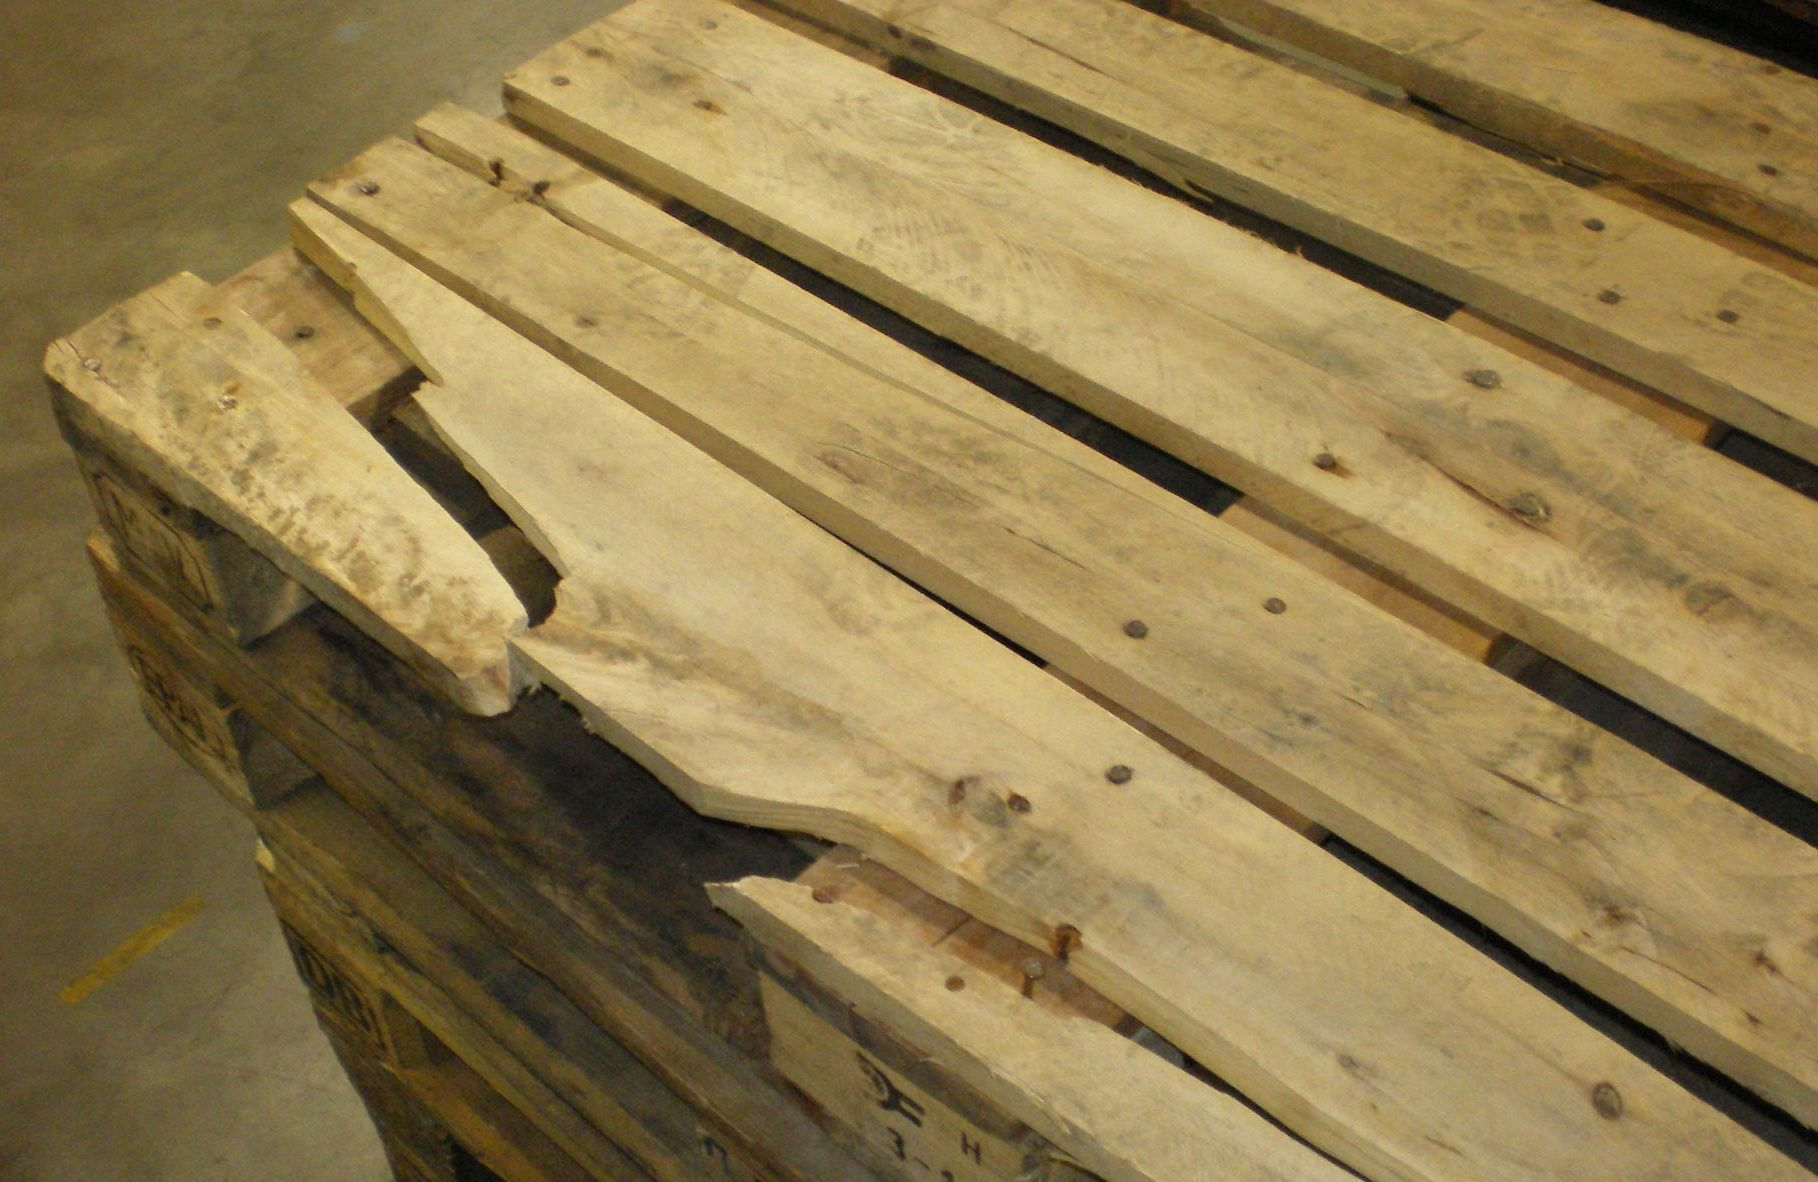 Wooden shipping pallets are really popular these days as a